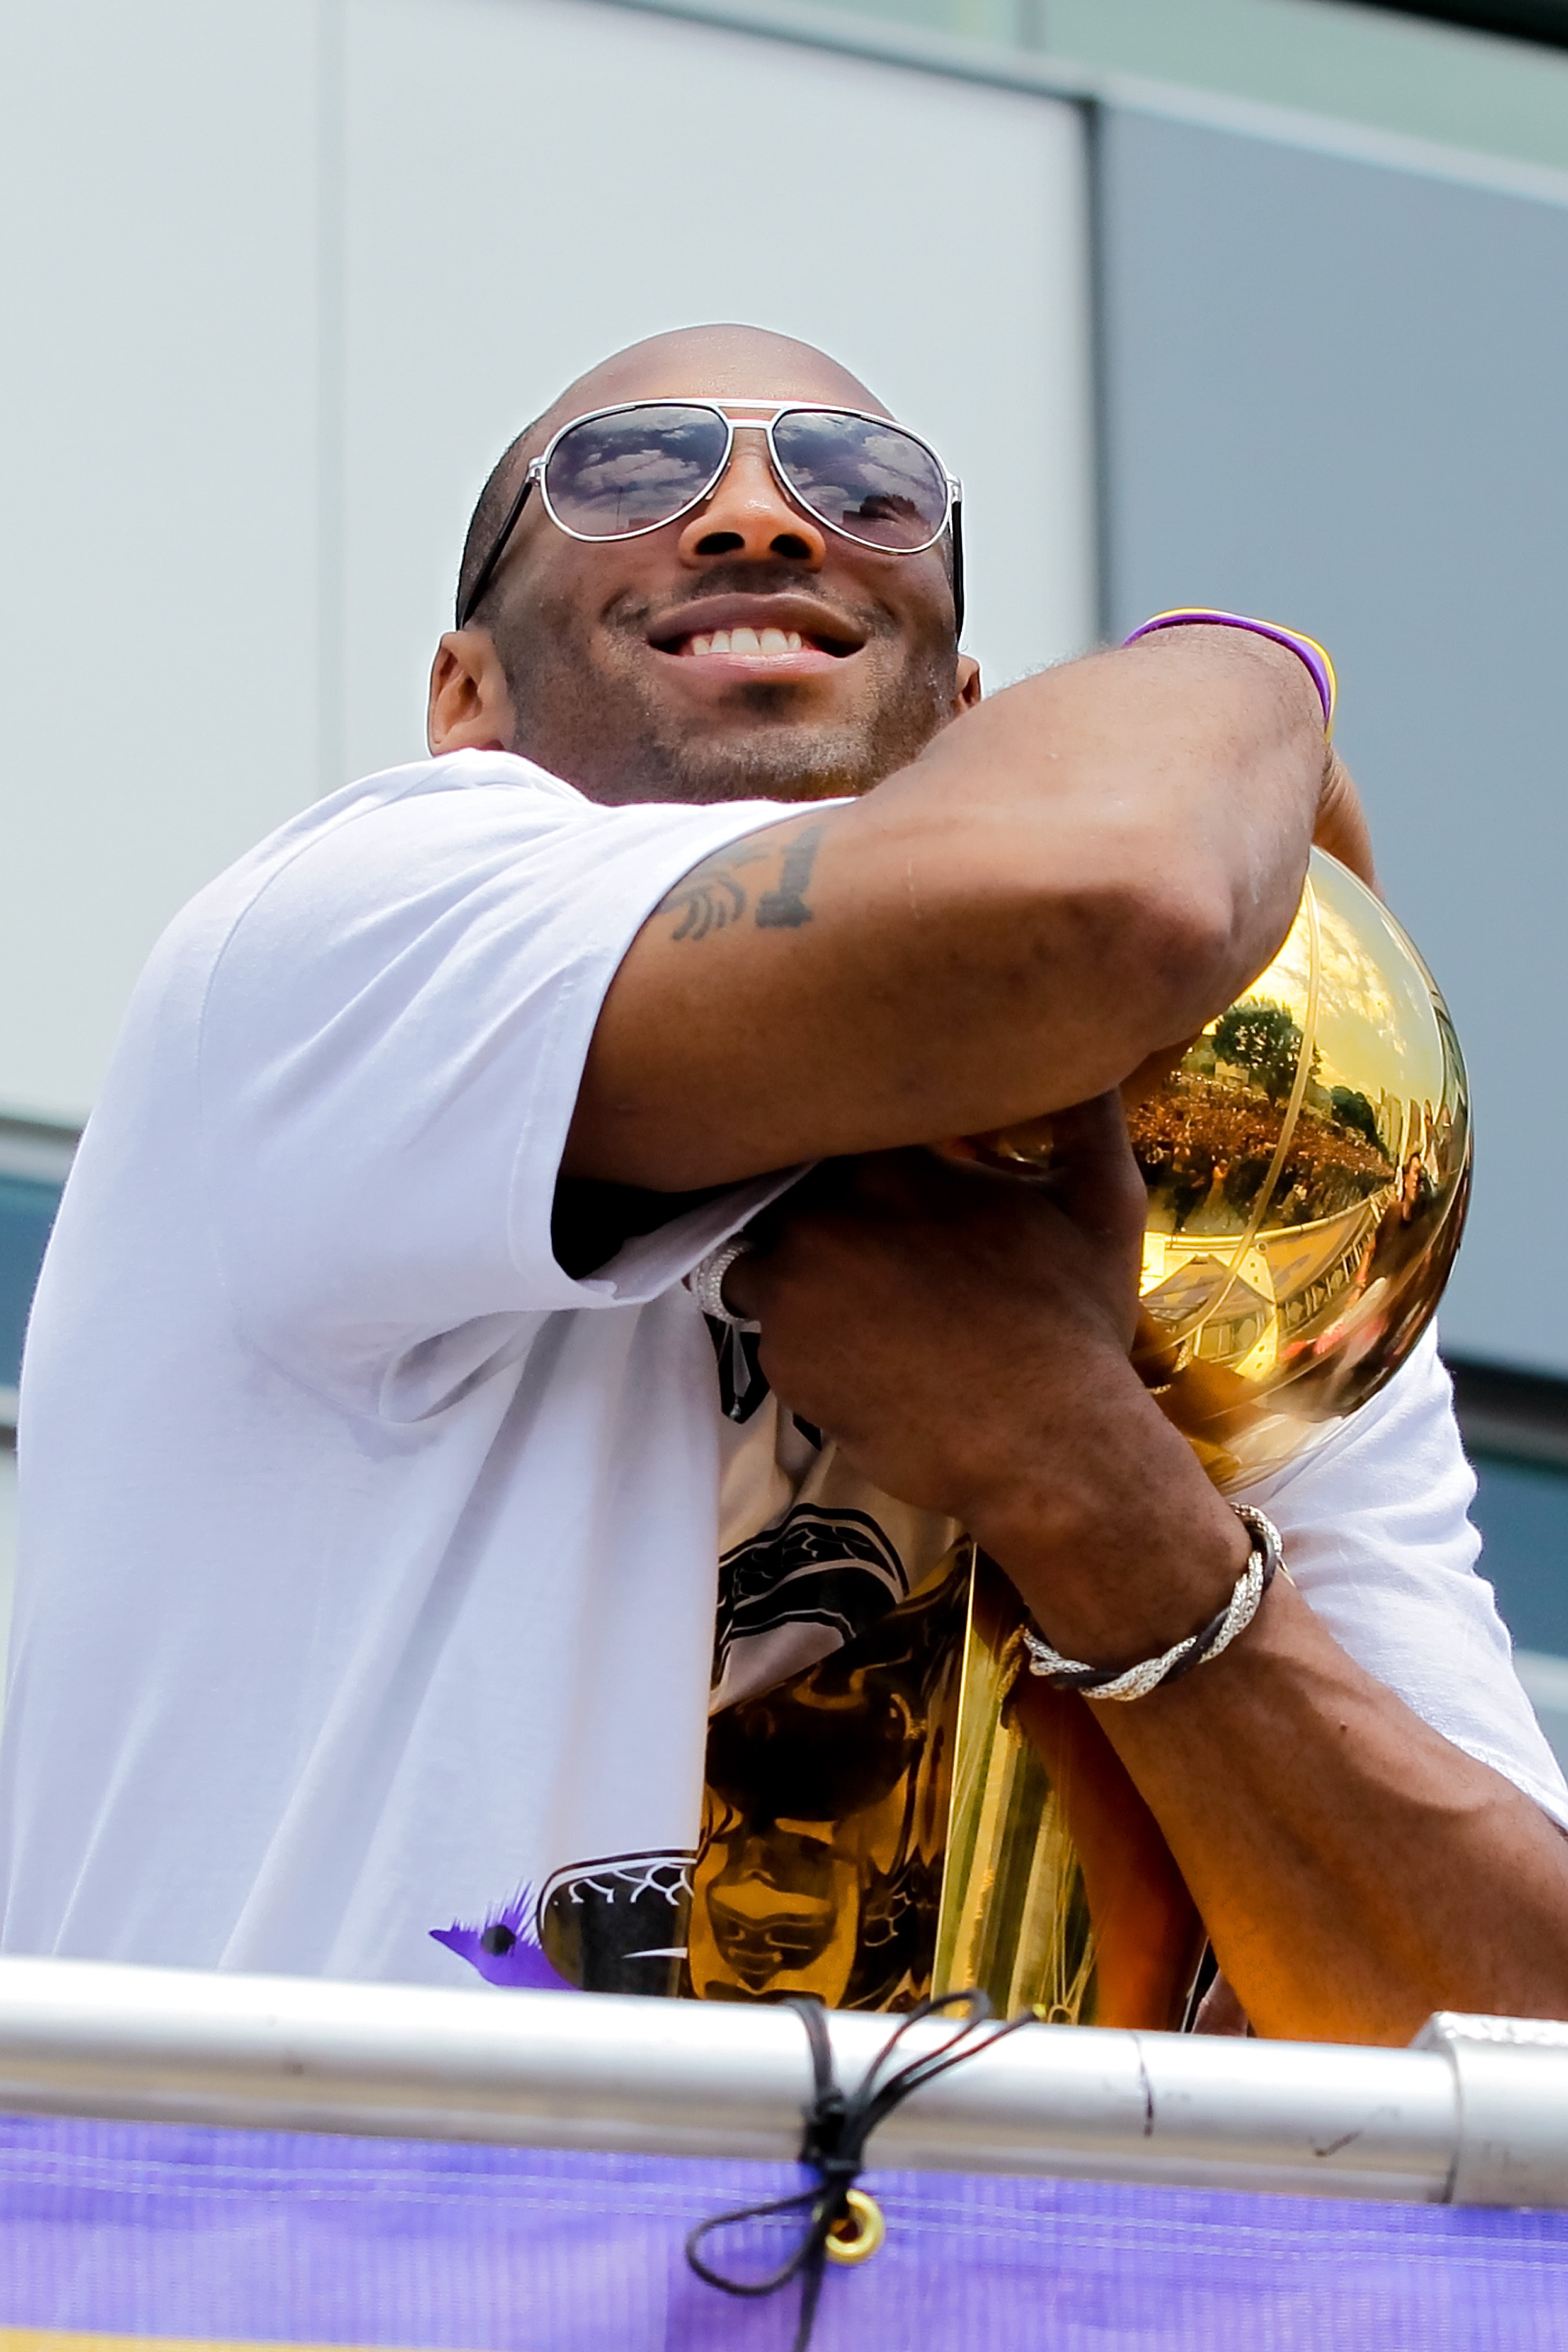 LOS ANGELES, CA - JUNE 21:  Los Angeles Lakers guard Kobe Bryant holds the championship trophy while riding in the victory parade for the the NBA basketball champion team on June 21, 2010 in Los Angeles, California. The Lakers beat the Boston Celtics 87-7